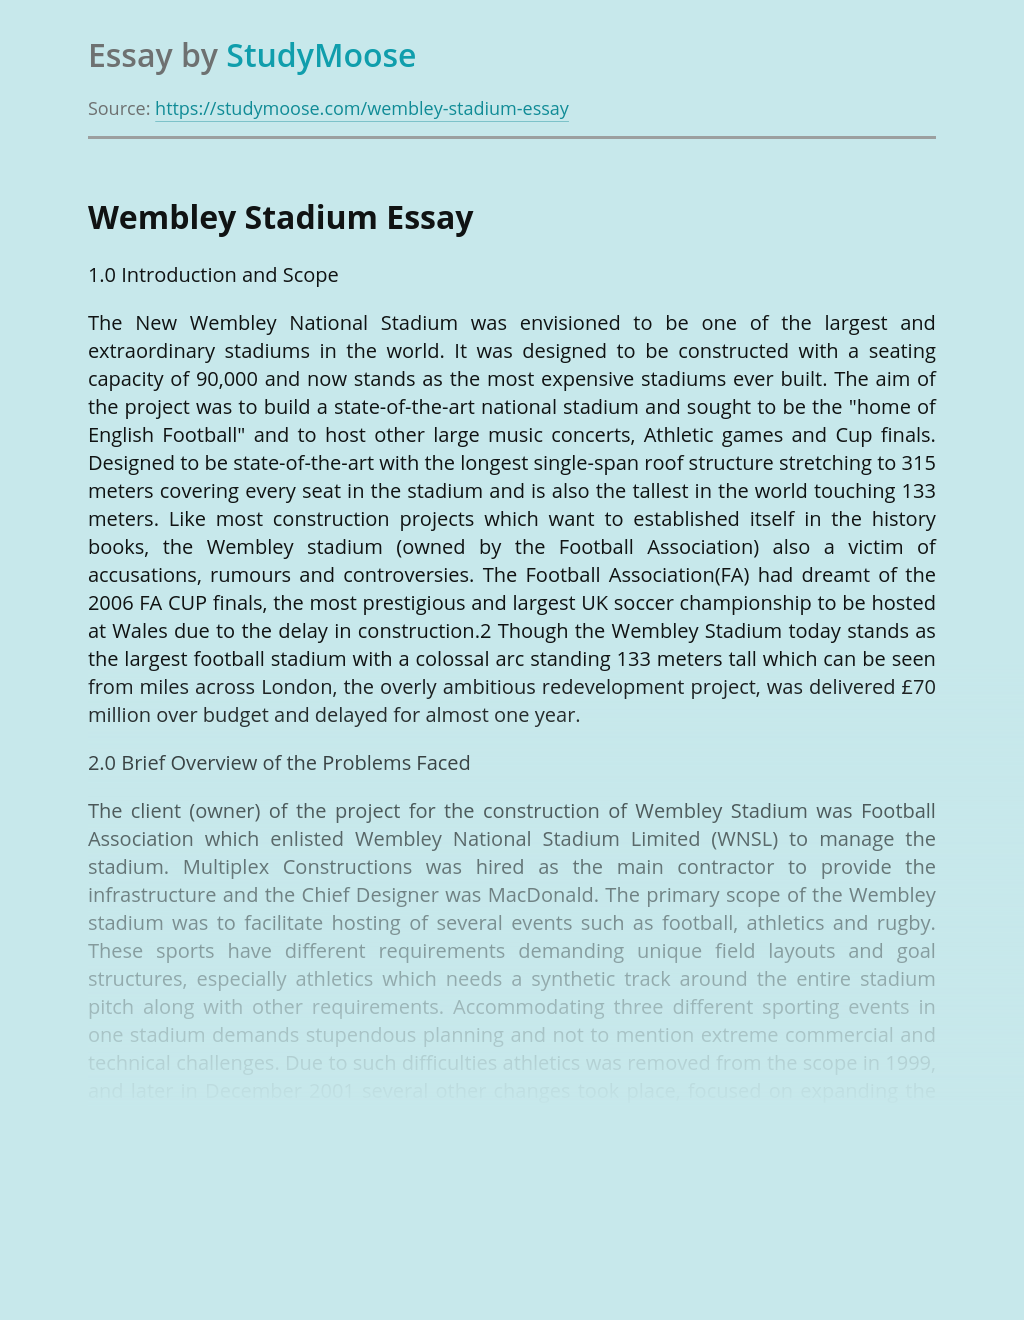 The New Wembley National Stadium